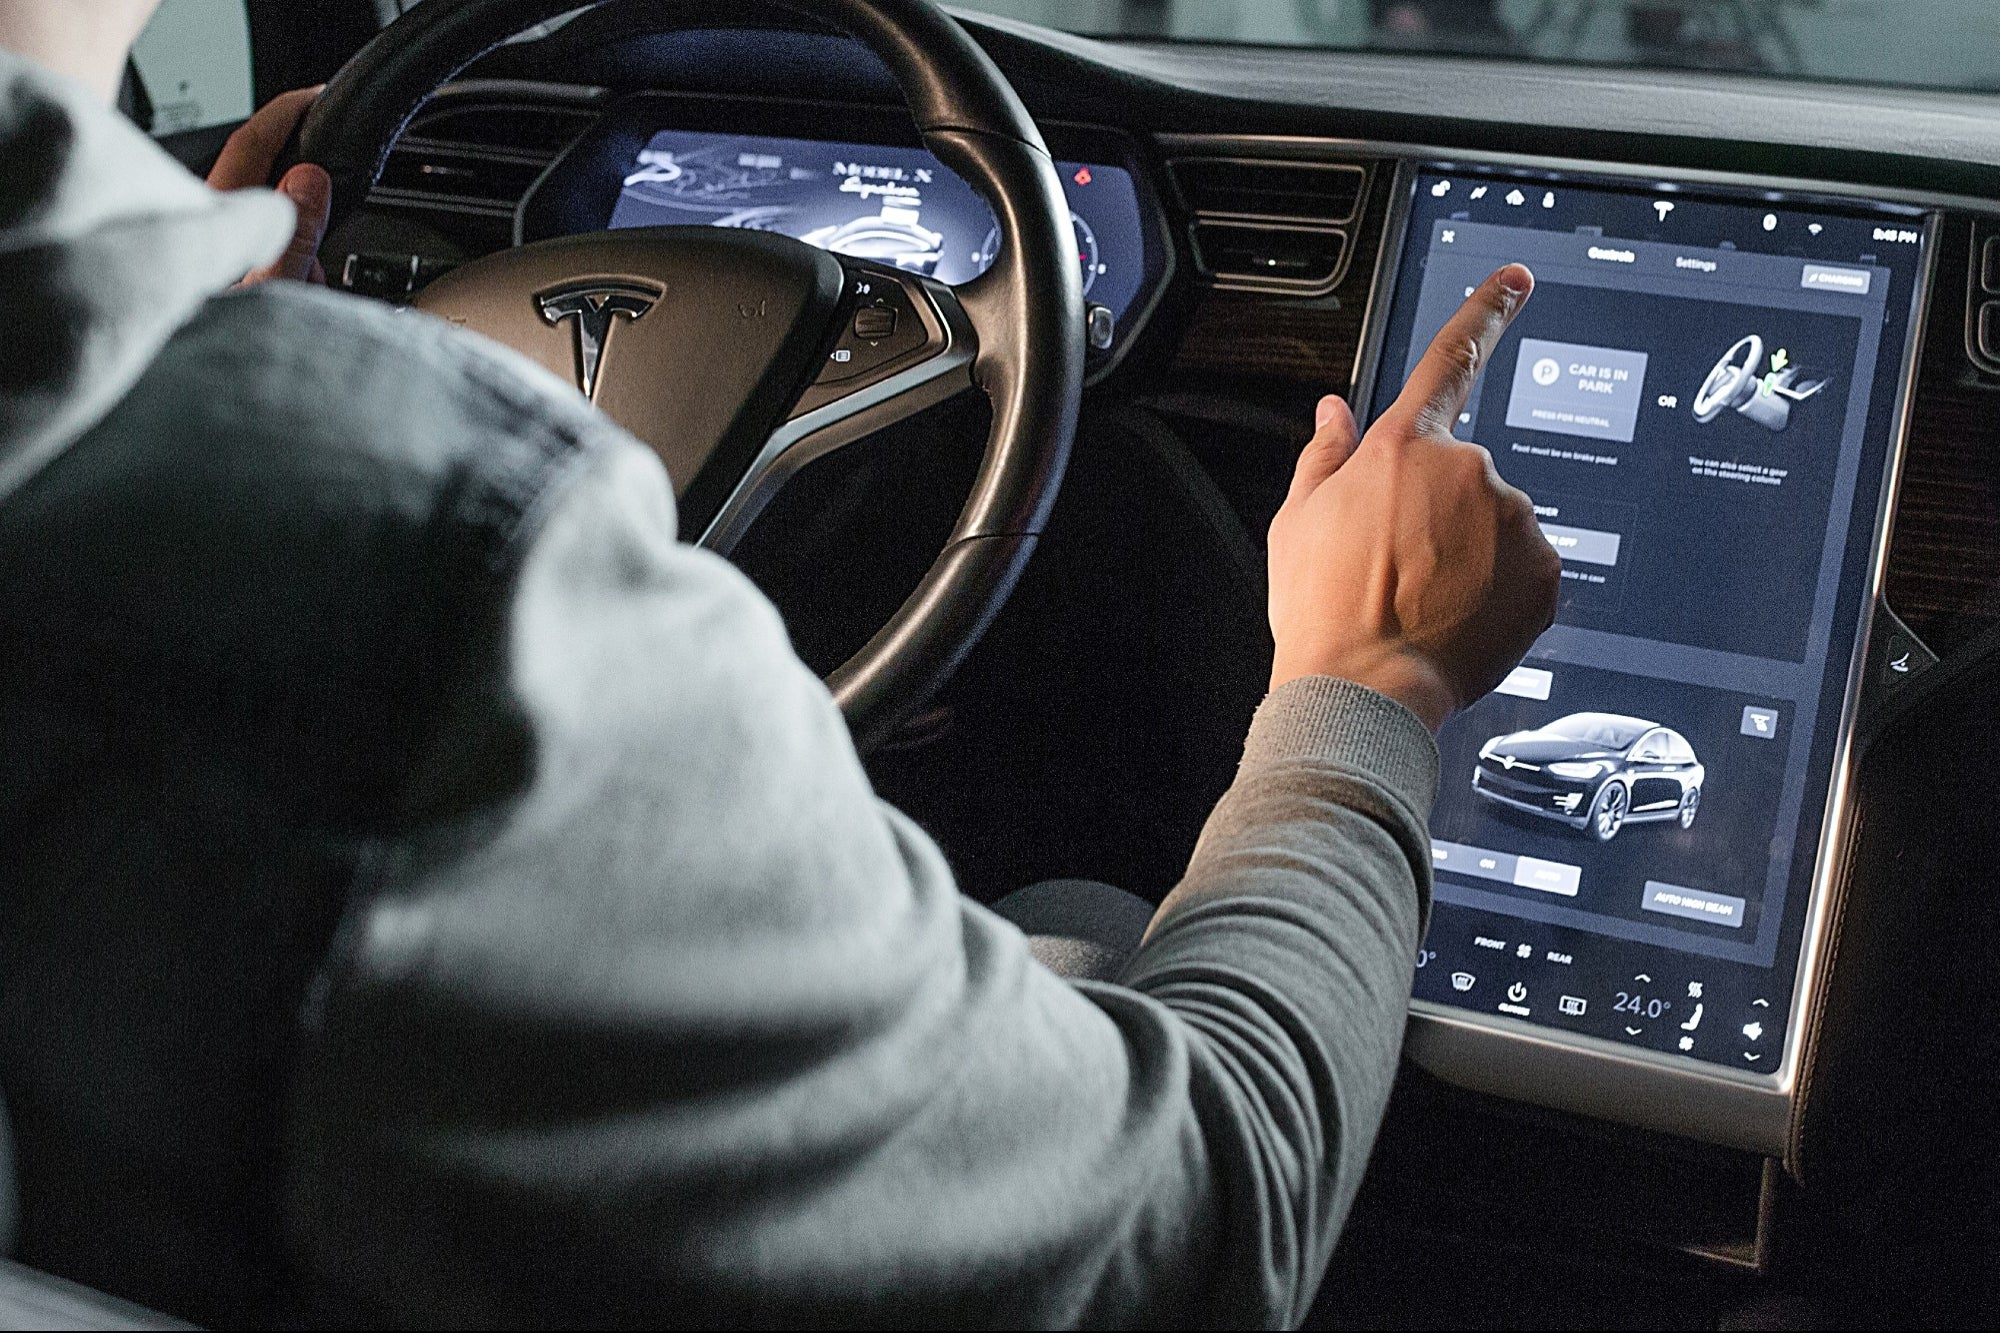 Tesla could include Apple Music and Amazon to its cars